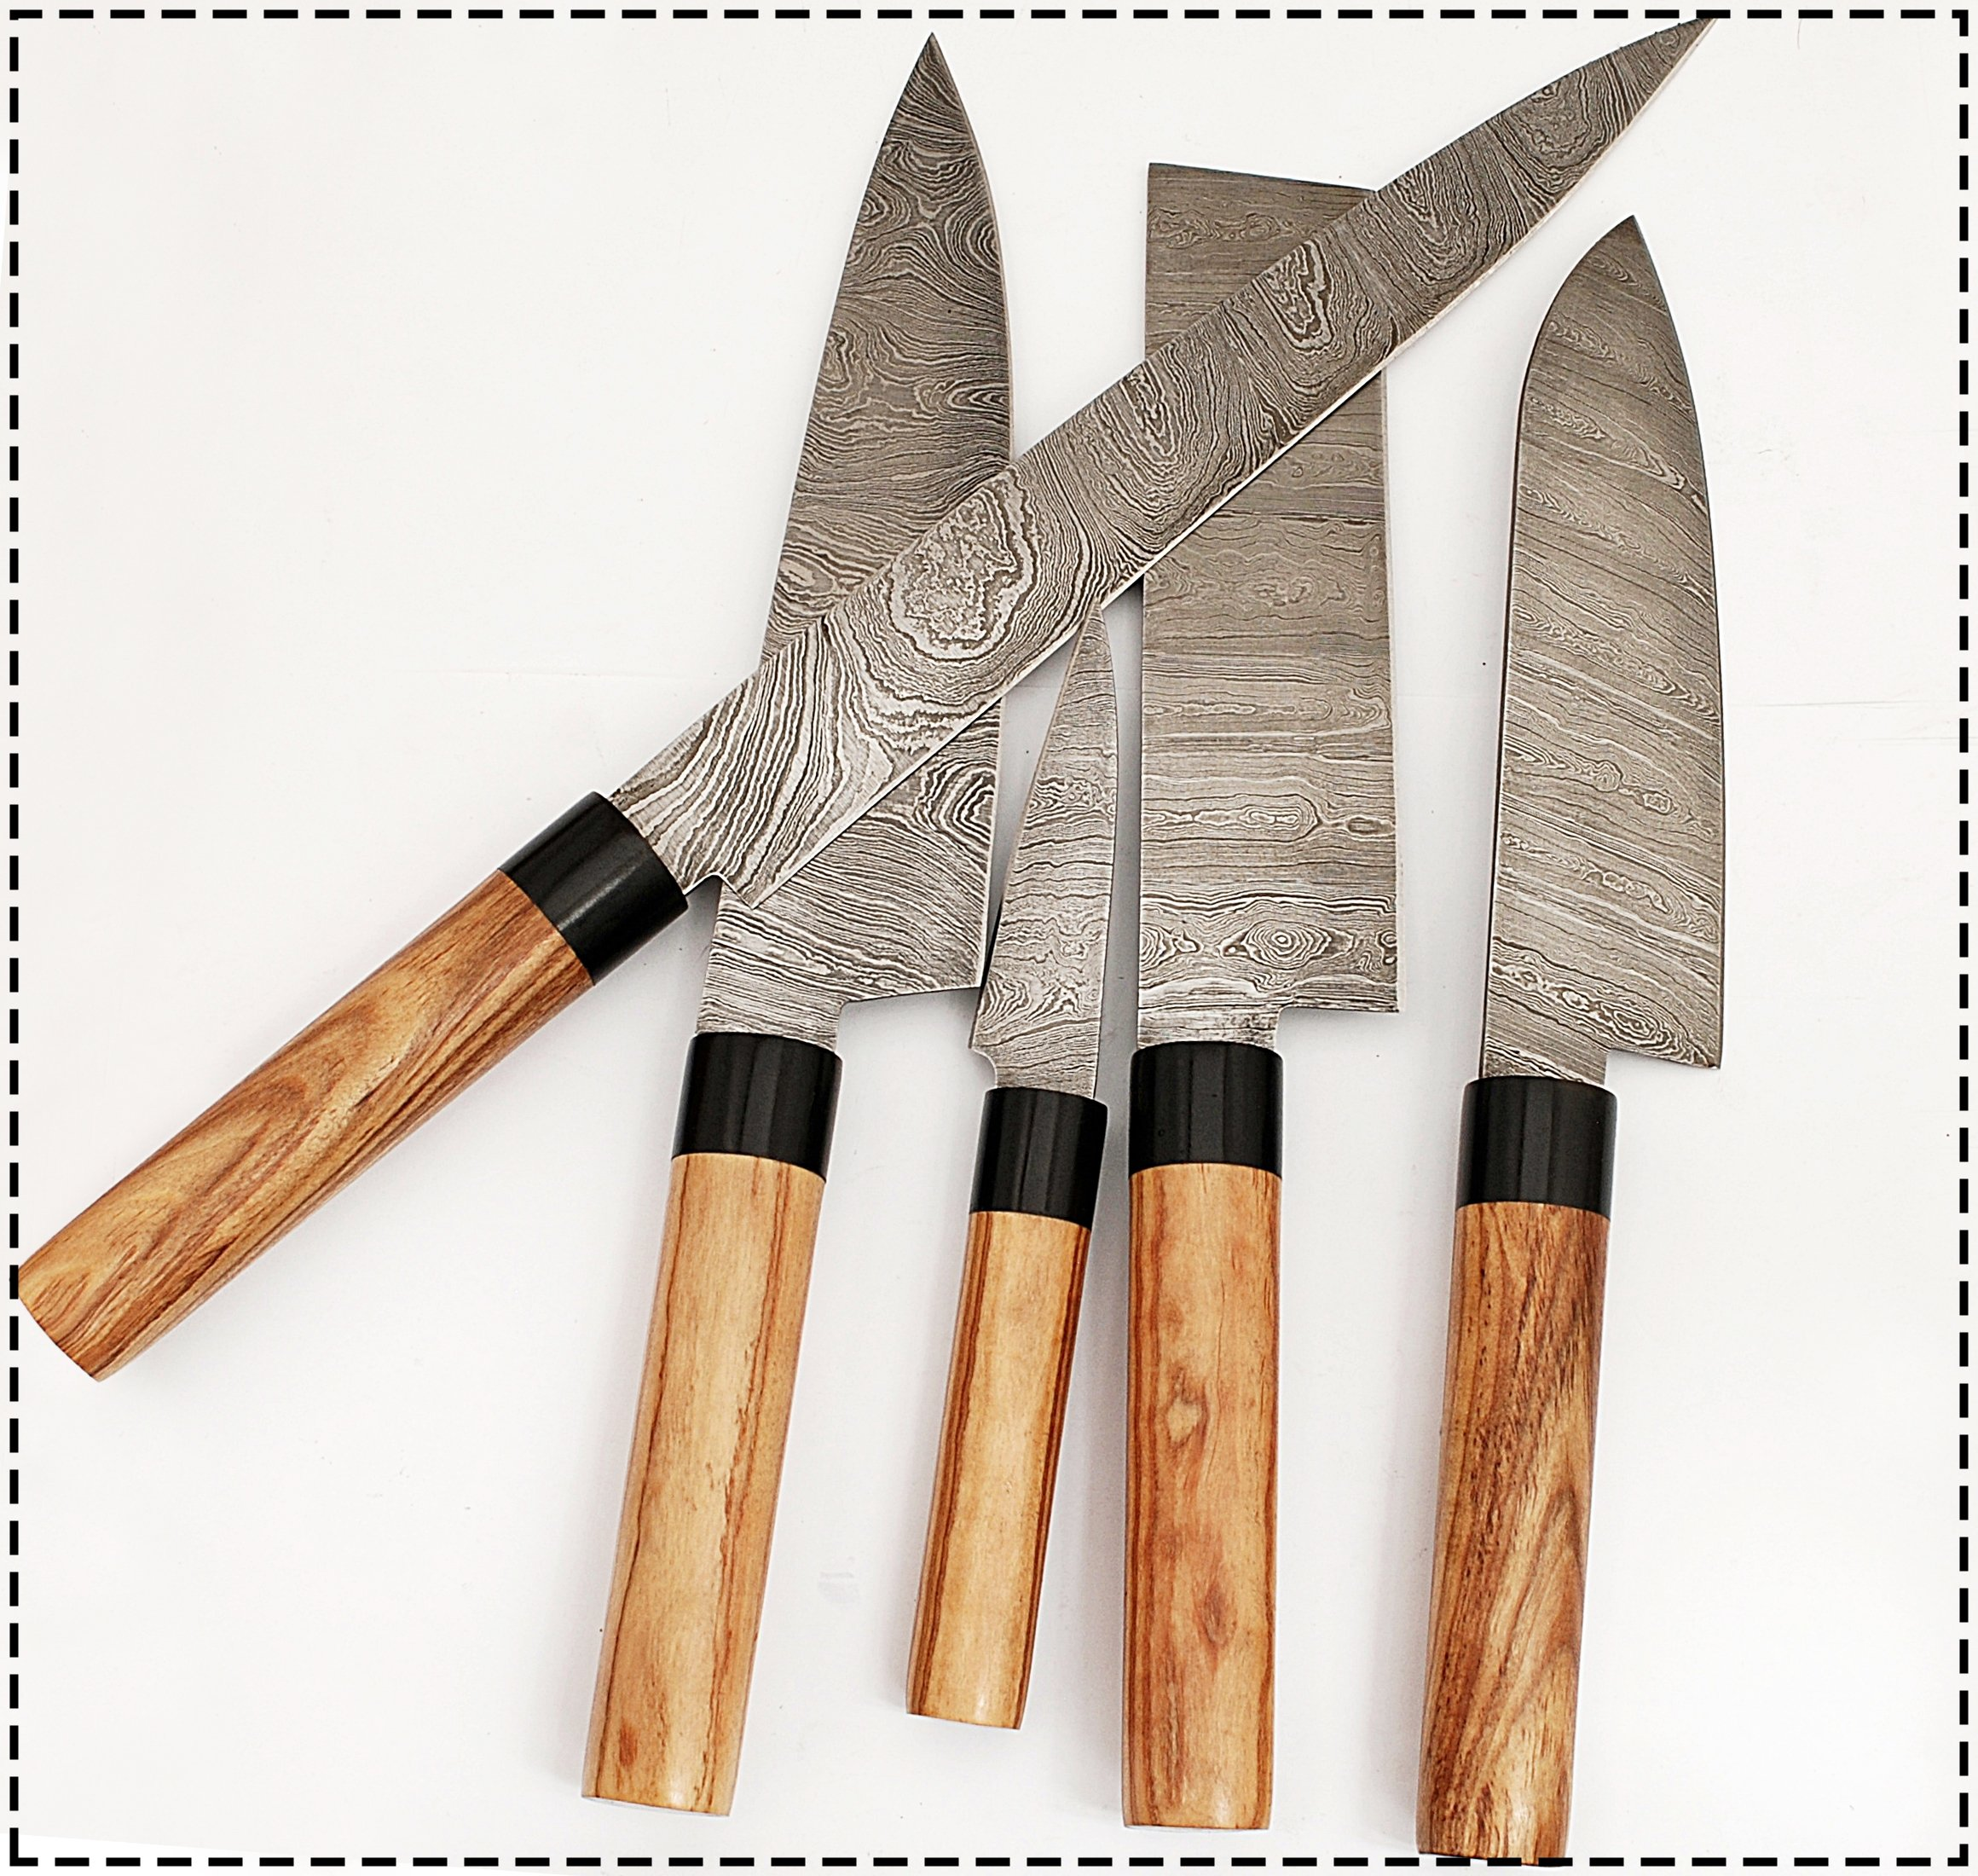 G15- 5 pcs Professional Kitchen Knives Custom Made Damascus Steel 5 pcs Professional Chef Kitchen Knife Set Round Wood Handle with 5 Pocket Case Chef Knife Roll Bag by GladiatorsGuild (Brown) by GladiatorsGuild (Image #3)